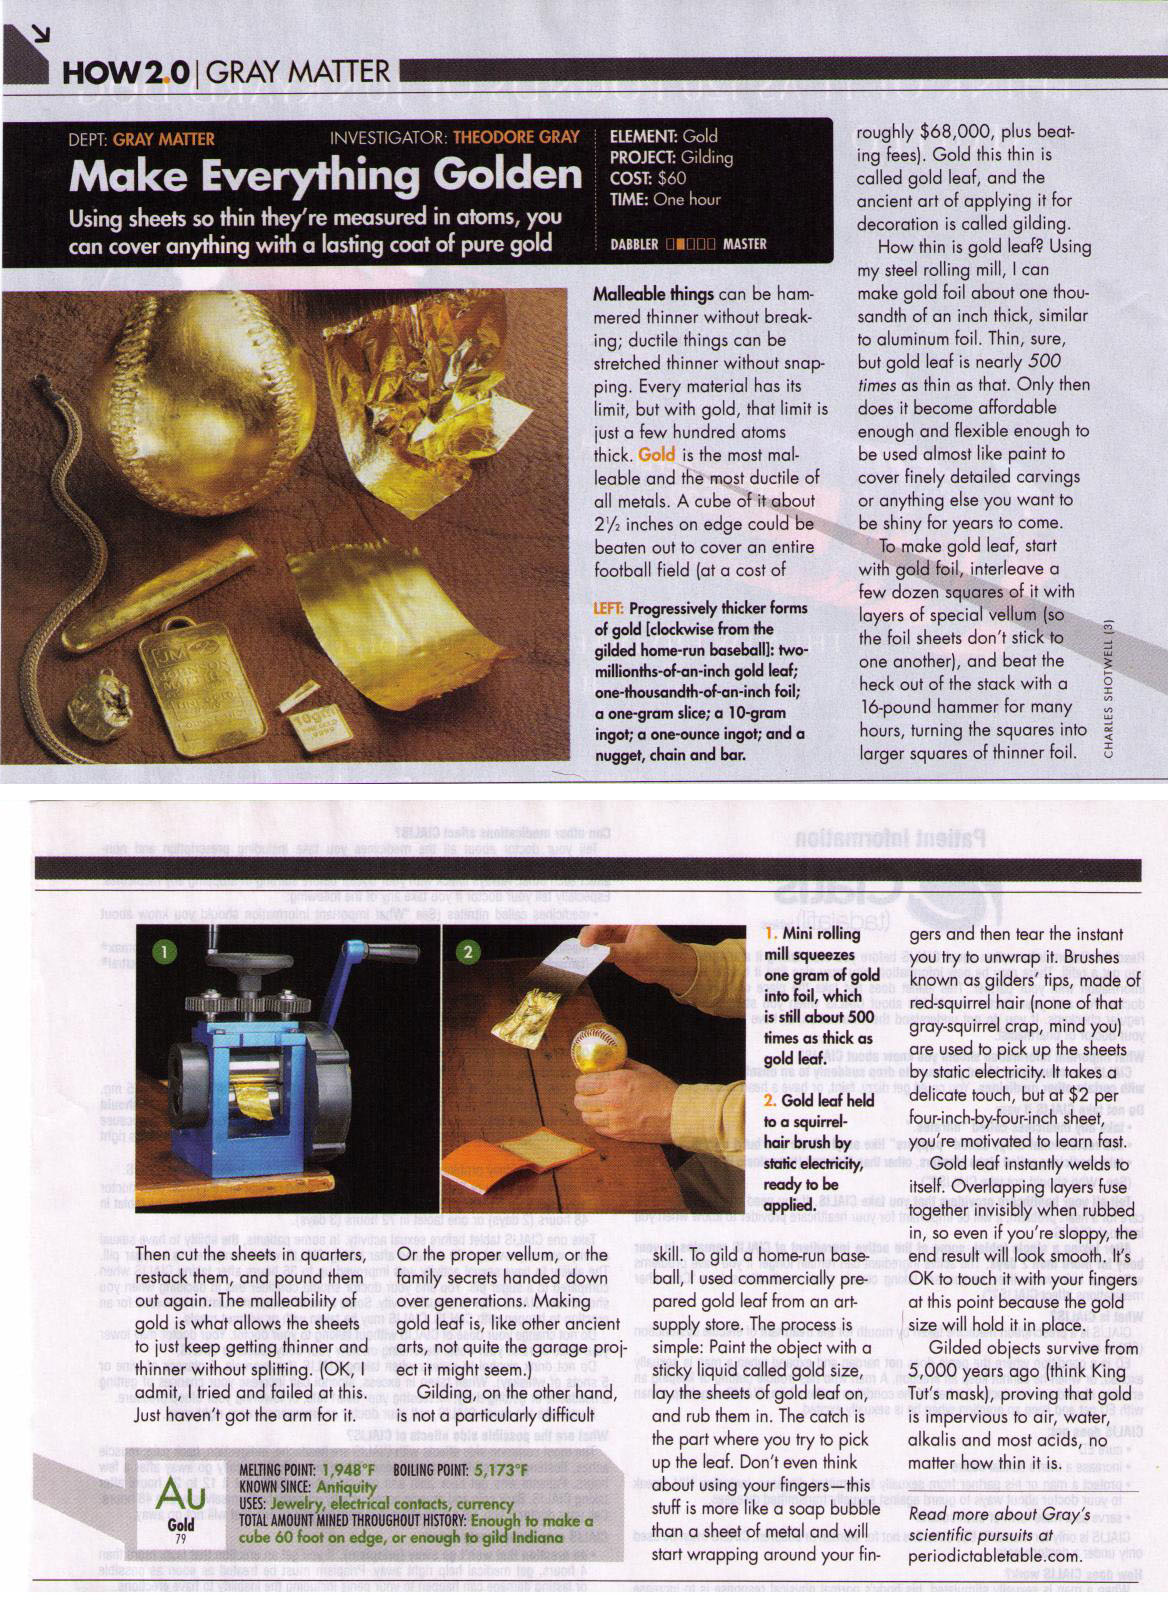 Make Everything Golden Popular Science Column By Theodore Gray